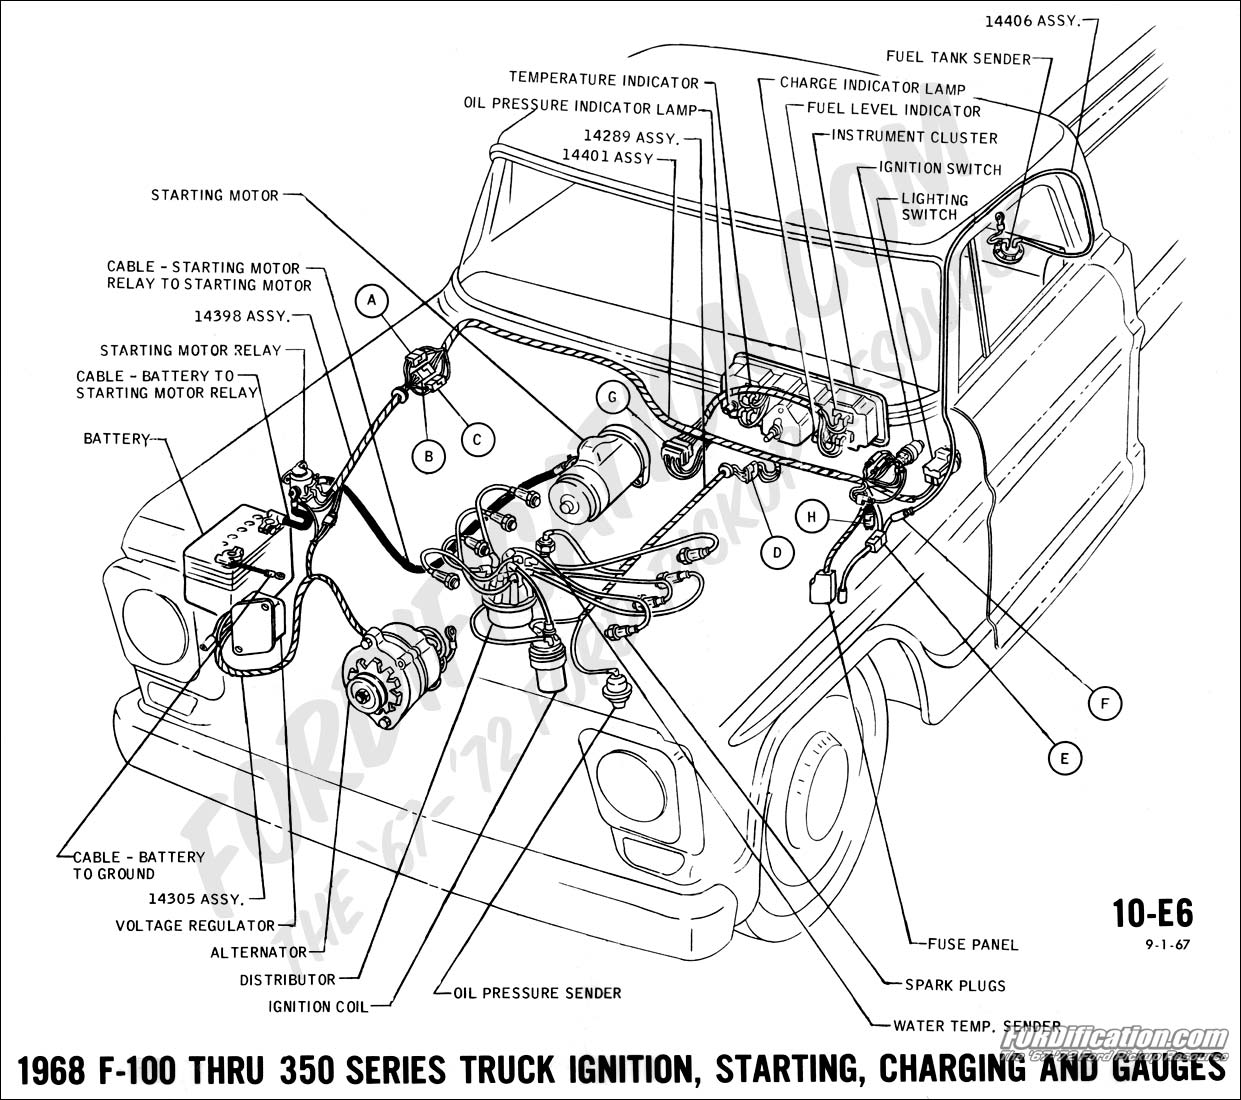 68 08 ford truck technical drawings and schematics section h wiring chevy 350 ignition wiring diagram at webbmarketing.co